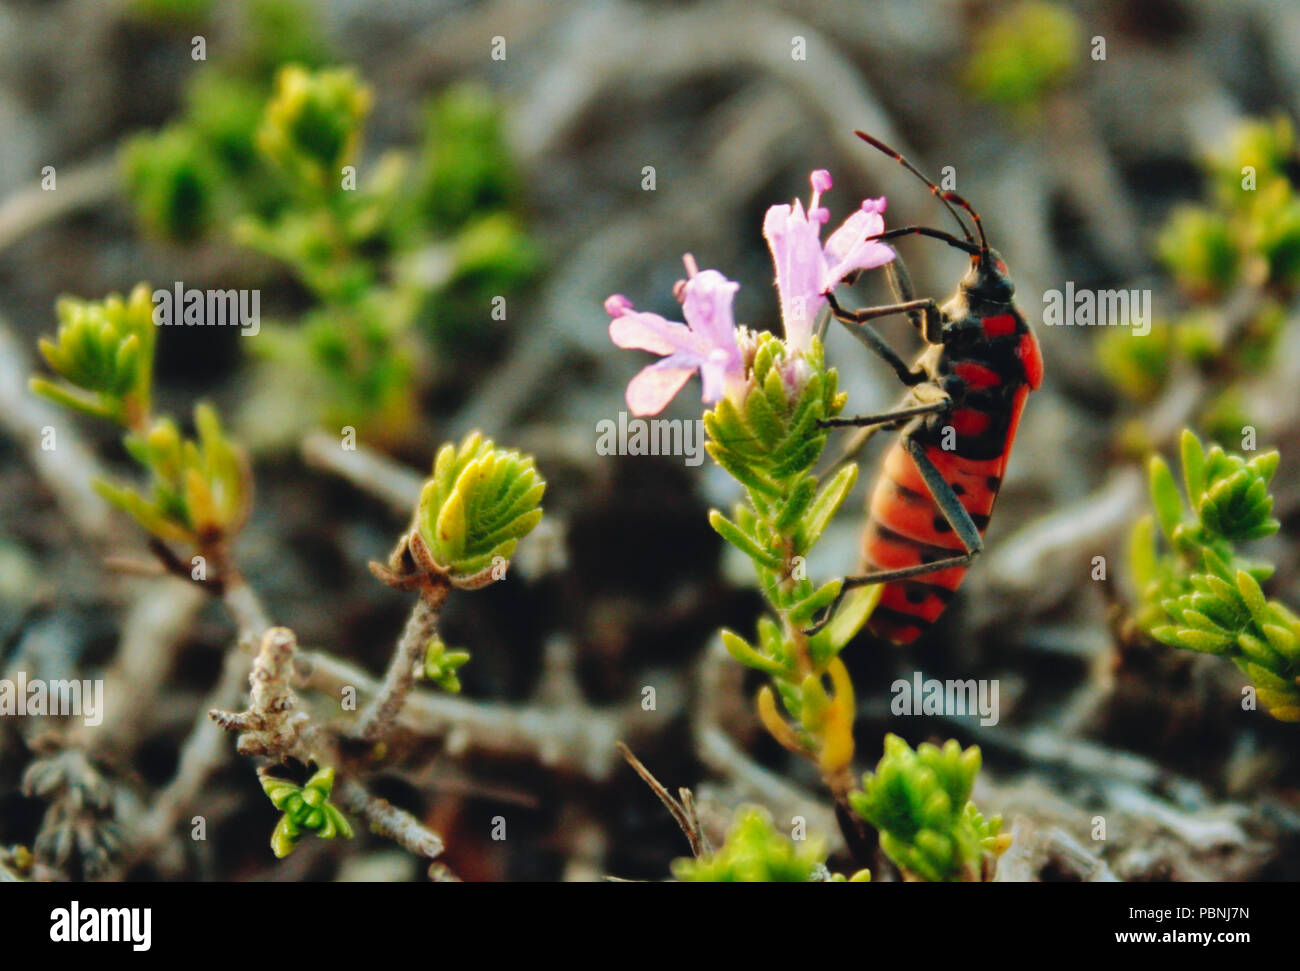 Firebug climbing the stalk of a rose coloured flower in the countryside - Stock Image